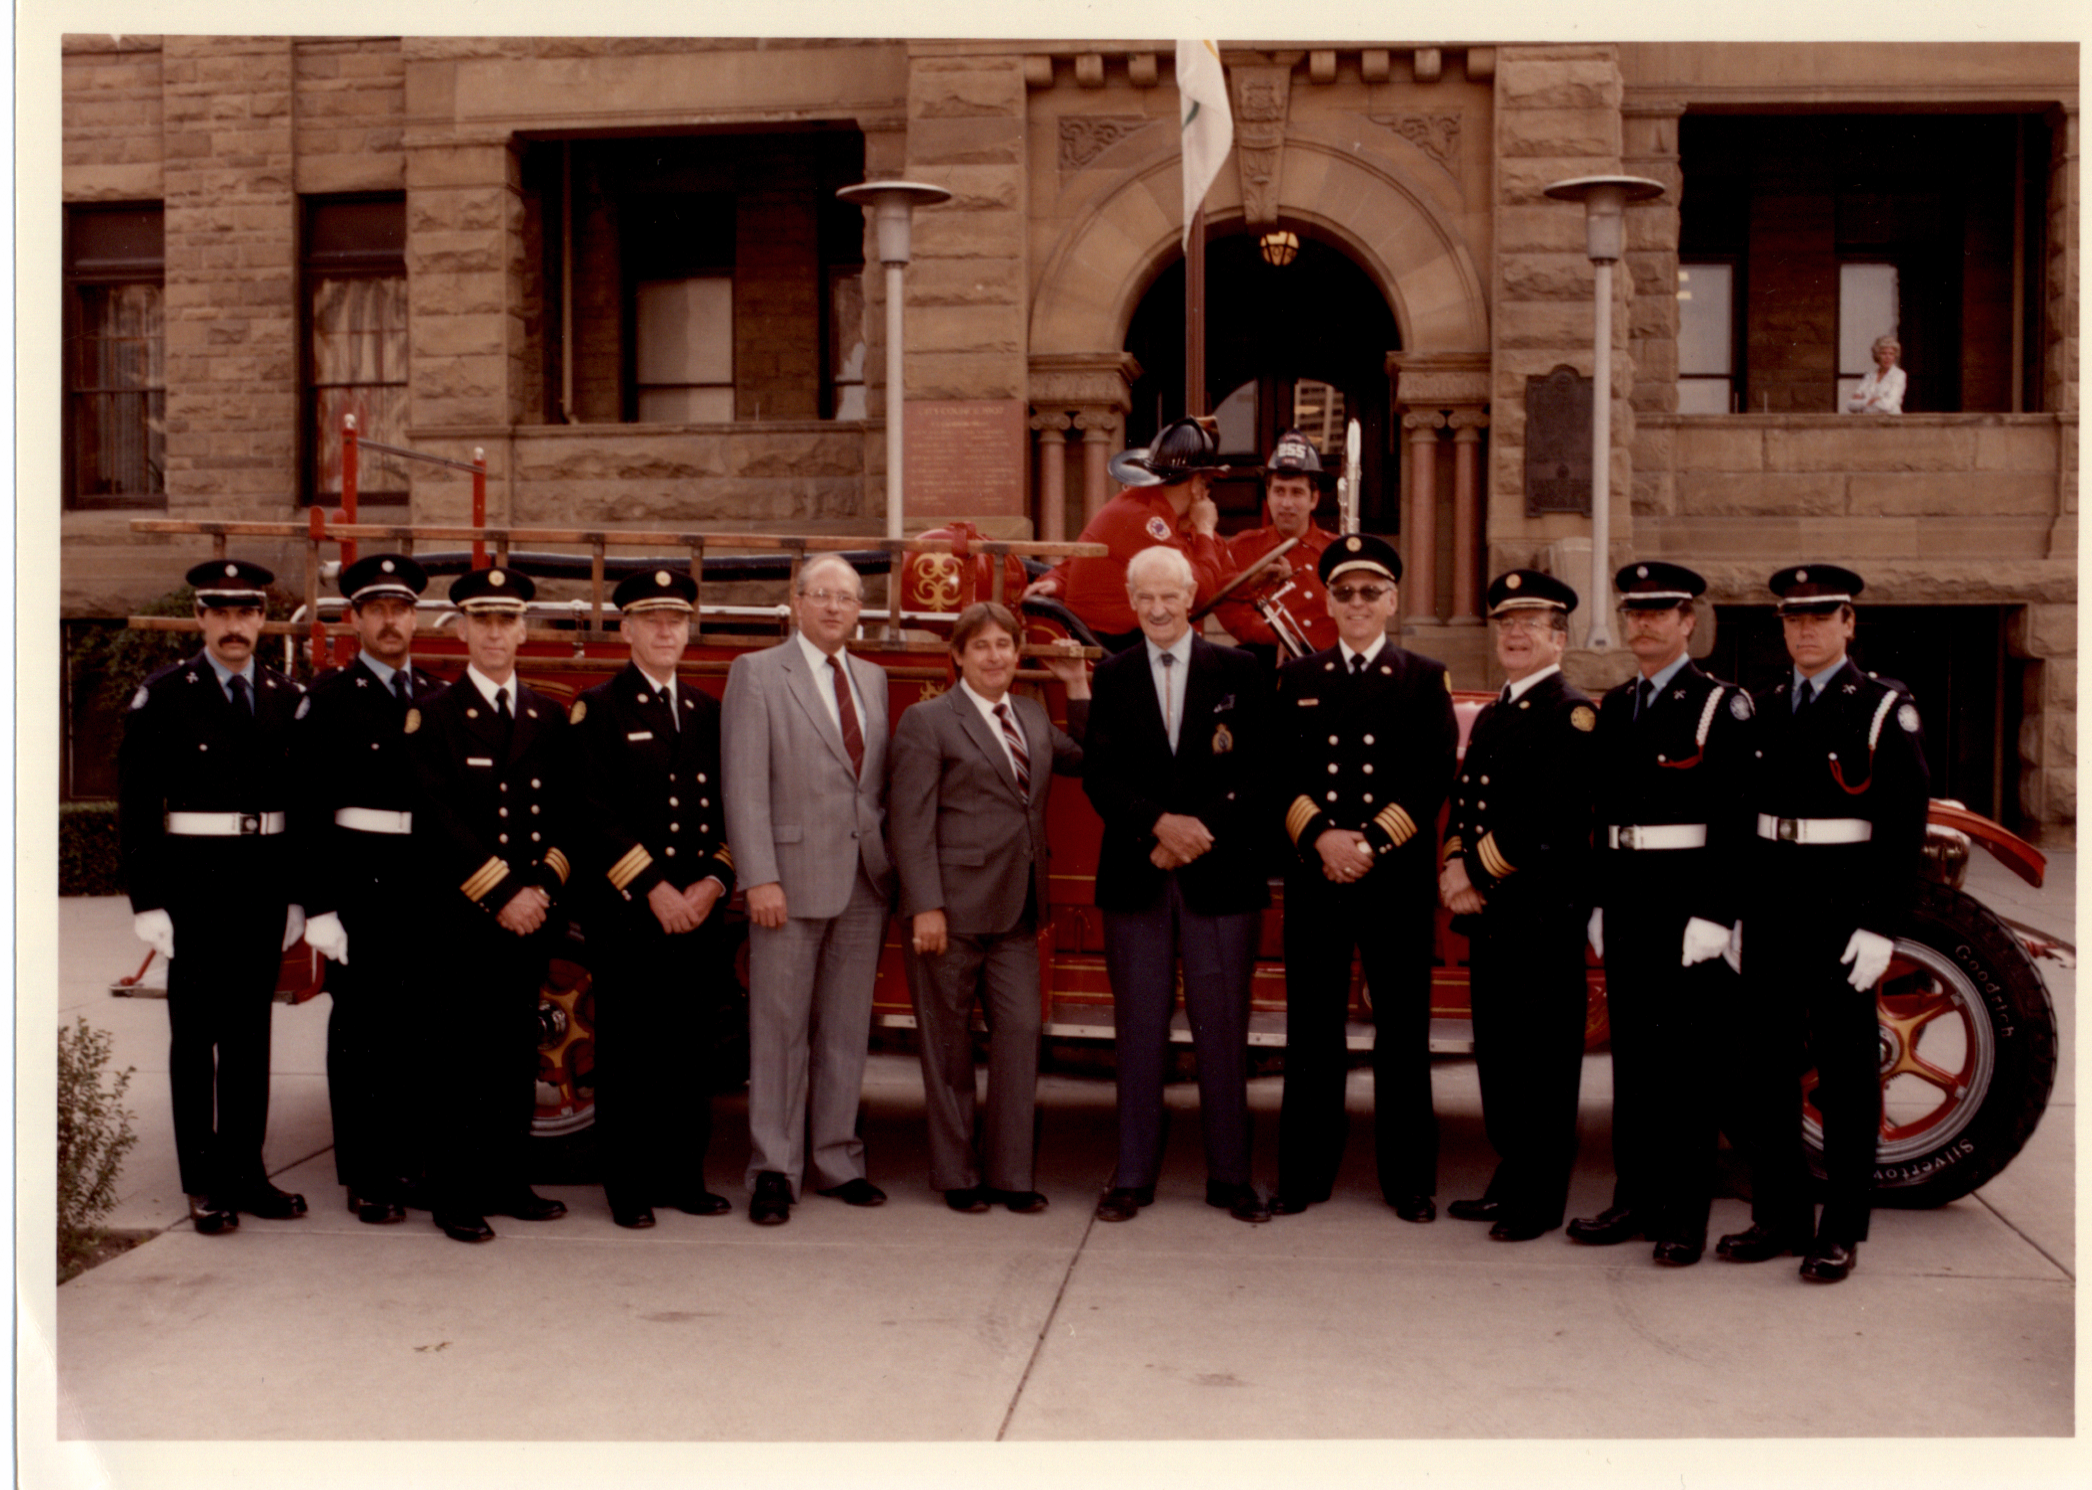 Eight guard members stand with former mayors, in suits, in front of antique fire truck and sandstone city hall.